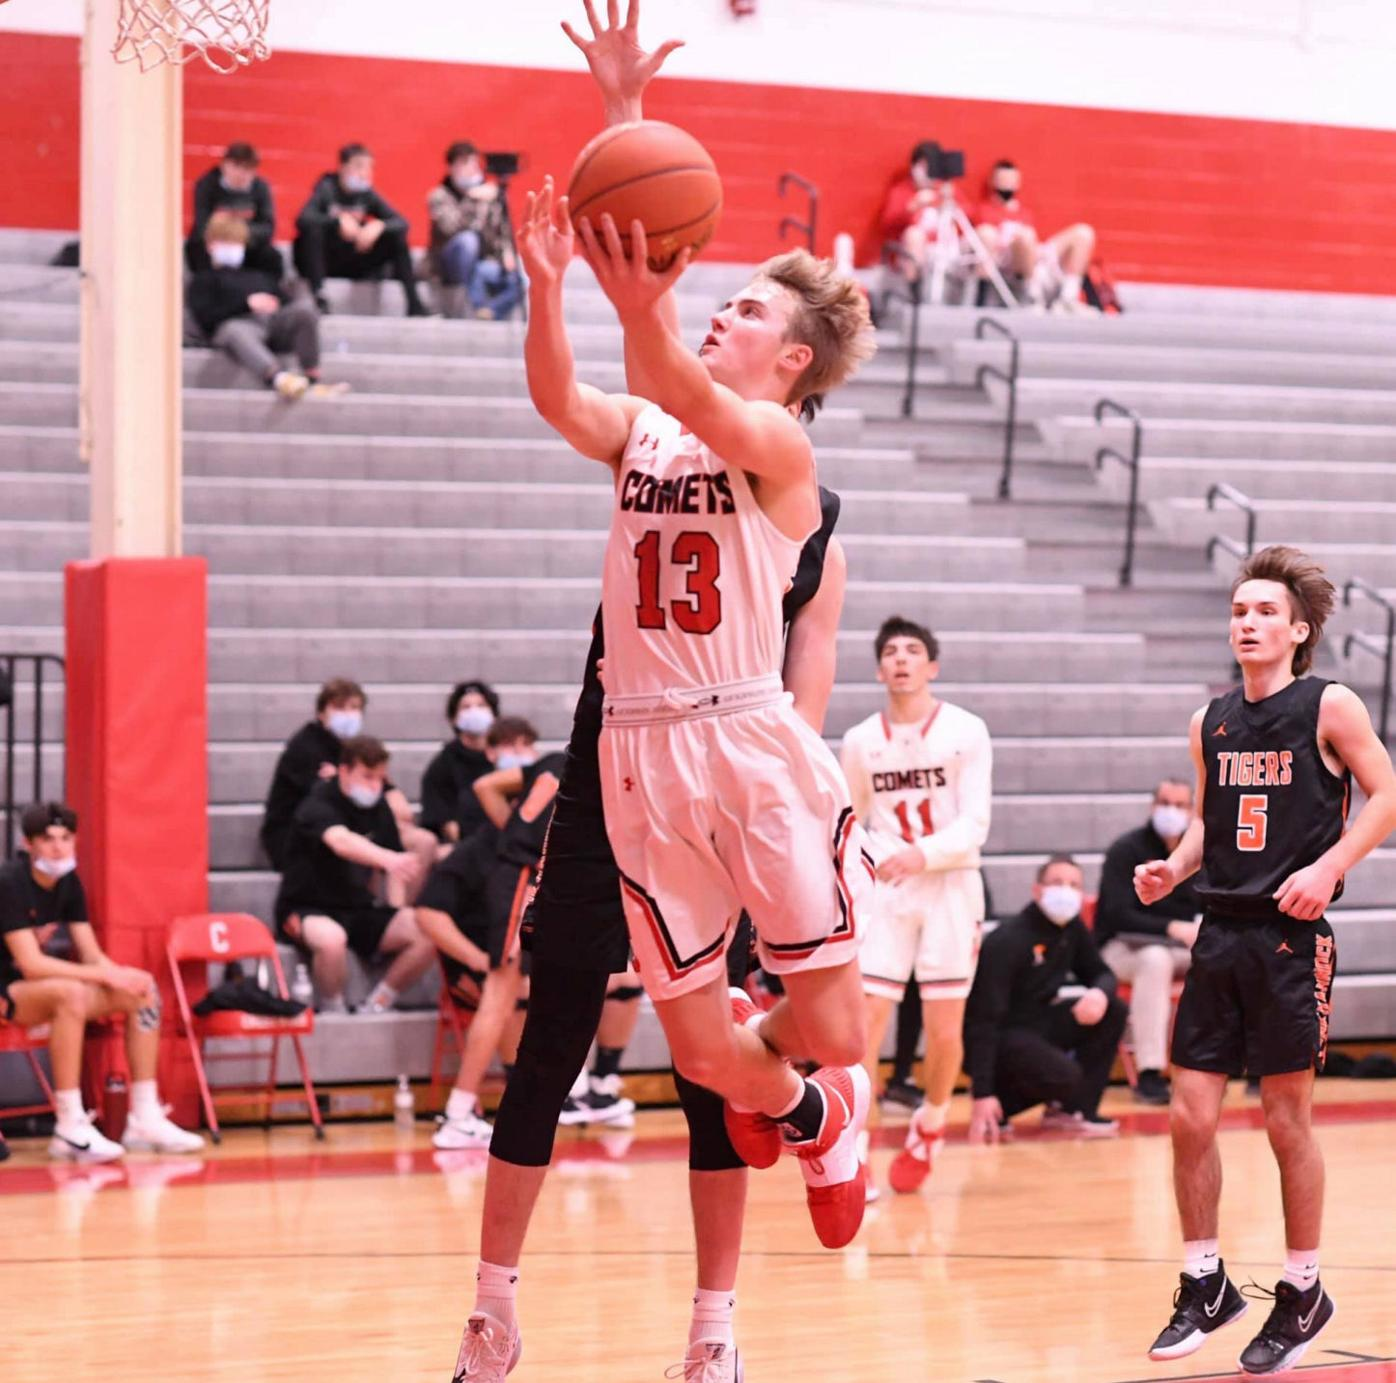 H.S. BASKETBALL: Comets' Petrosky, Zaleski named co-Players of the Year